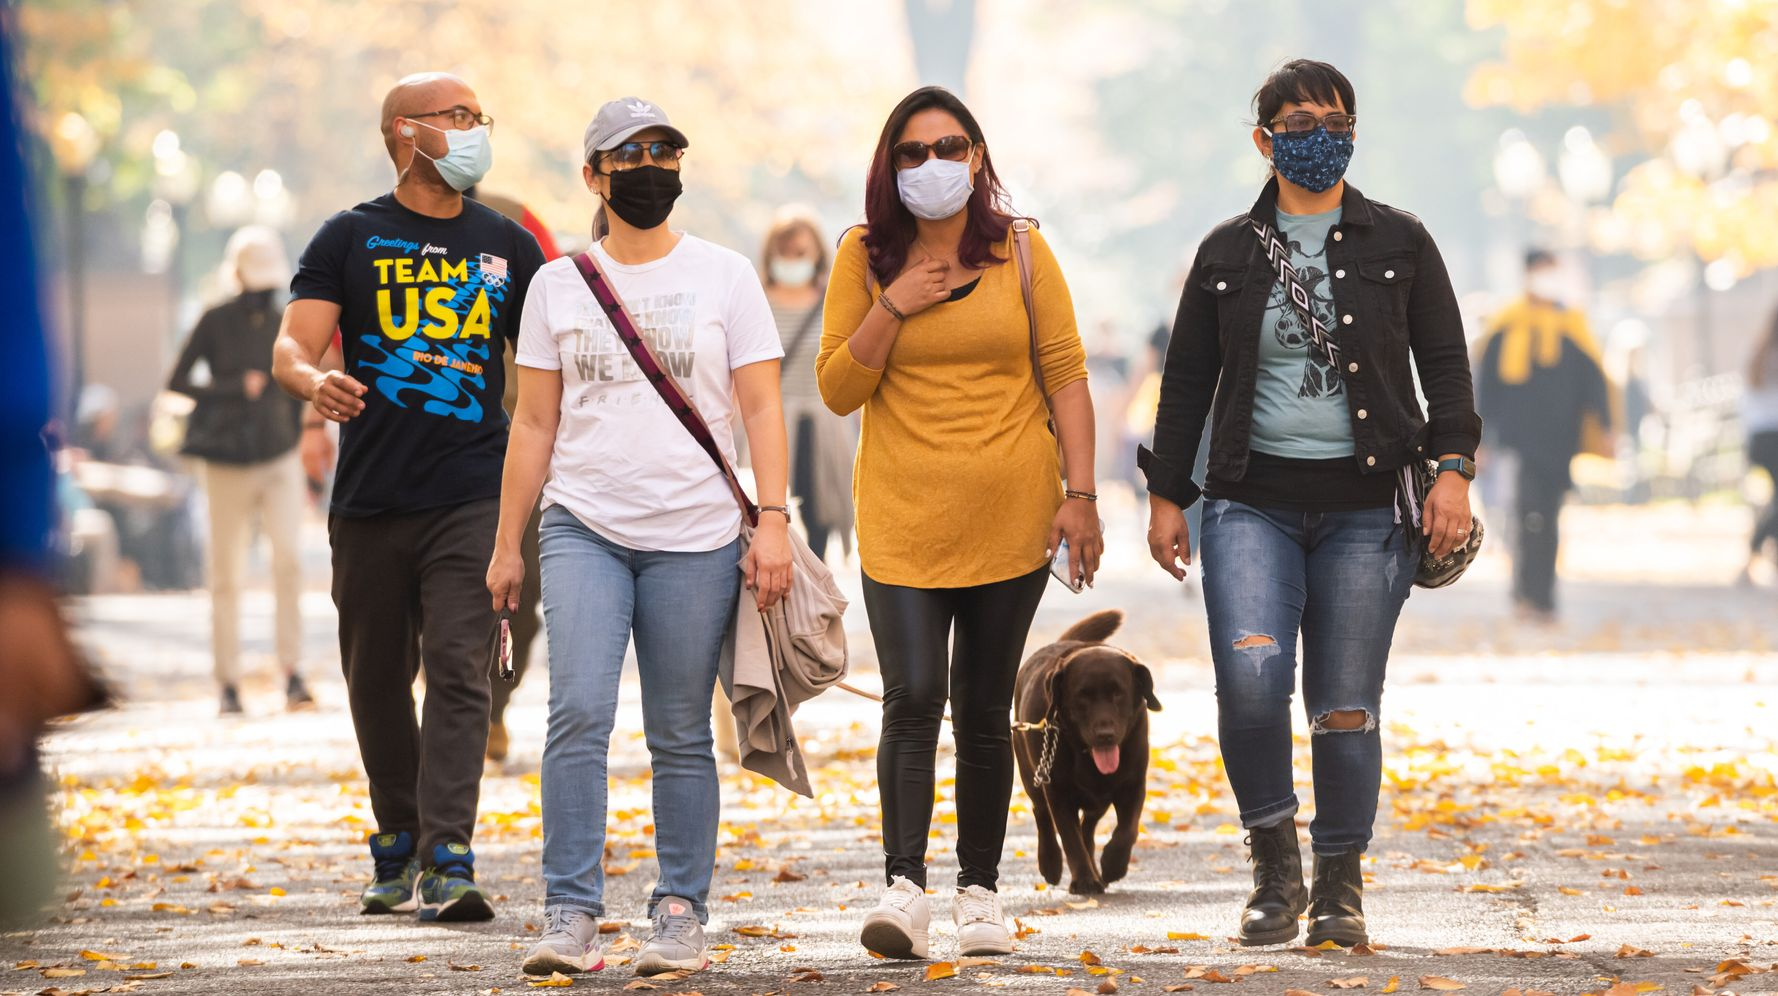 CDC Issues Strongest Endorsement For Masks Yet, Says Small Uptick Could Save $1 Trillion